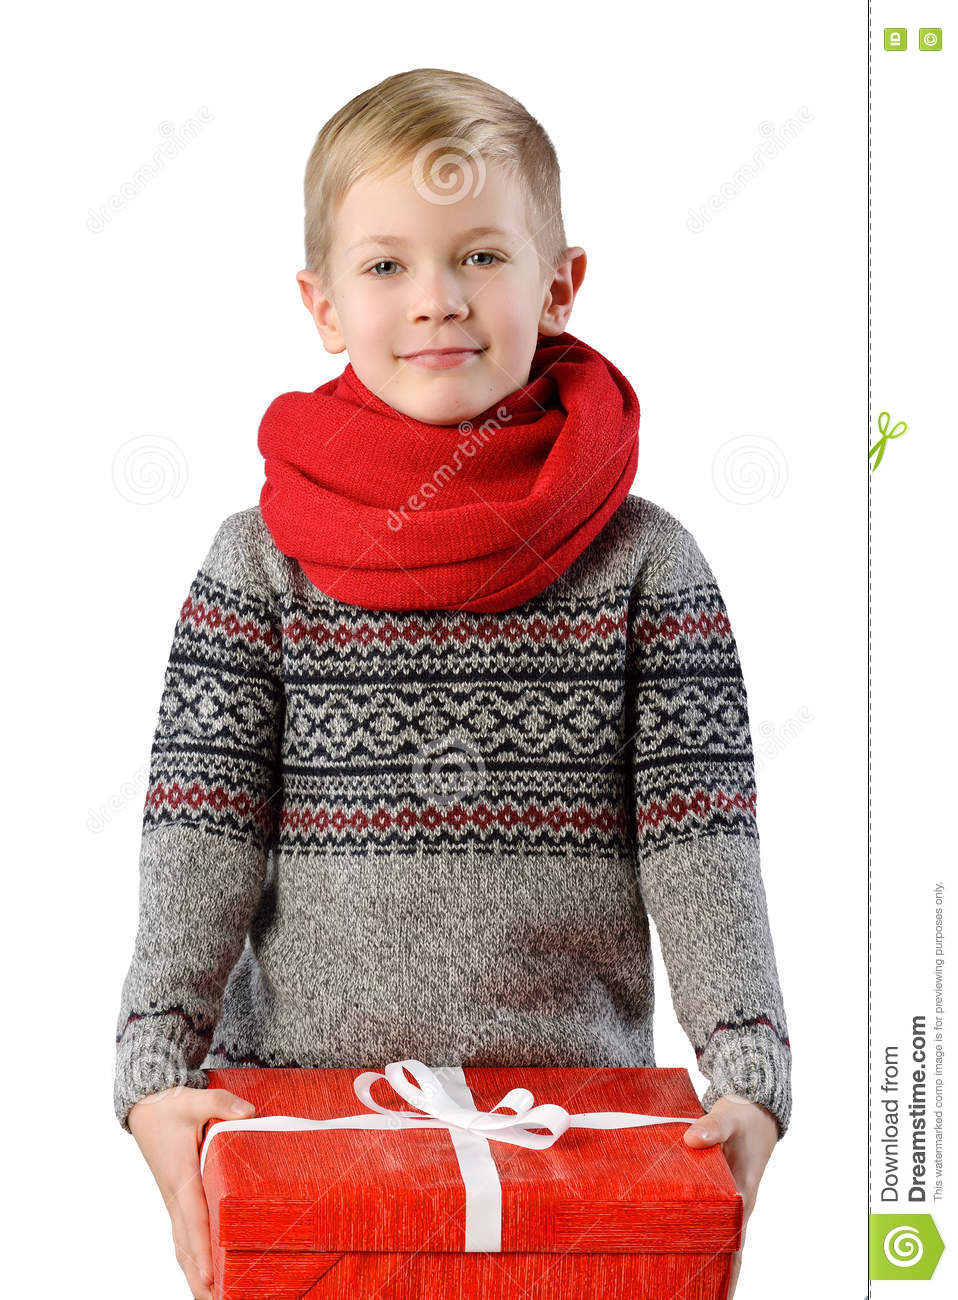 Fashionable Portrait Of A Adorable Toddler Boy In Warm Winter